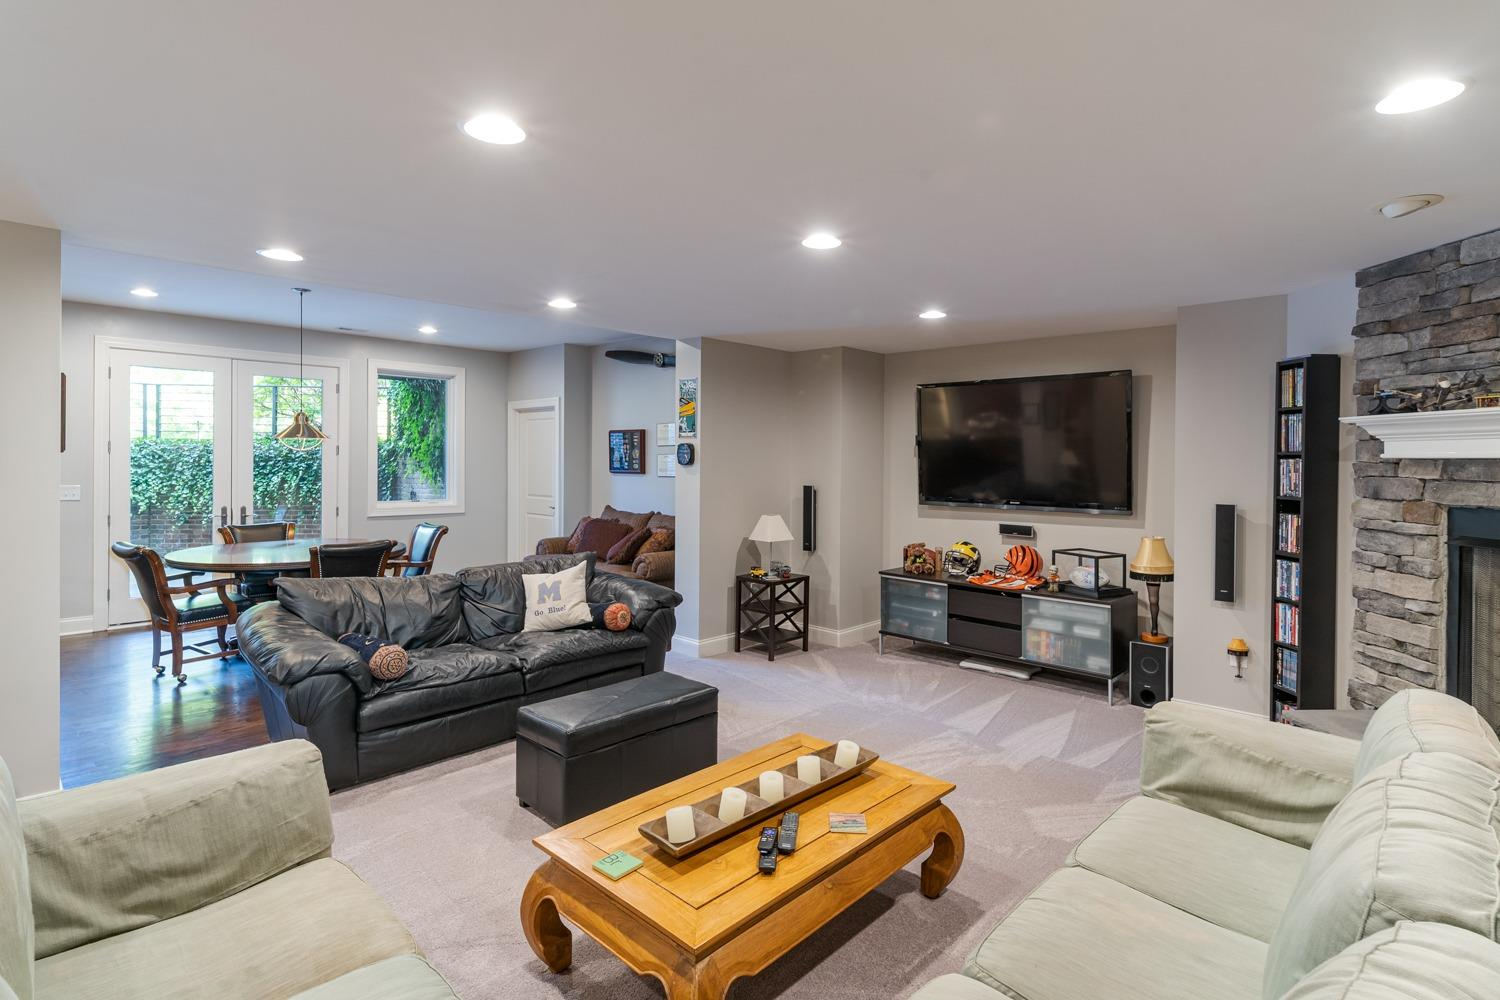 Lower level family room/recreation room… notice the walk-out in background.